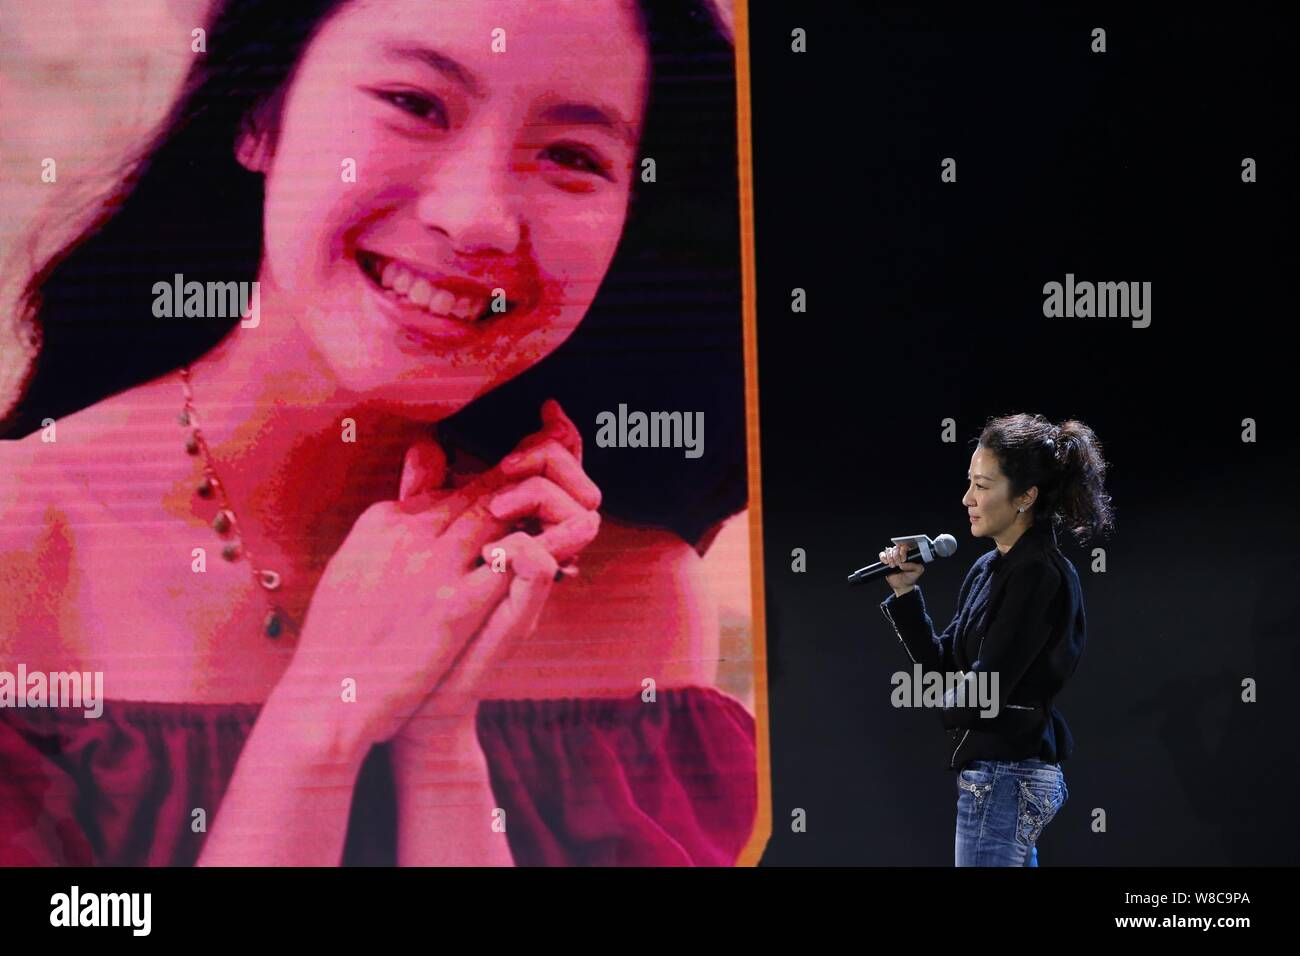 Malaysian Actress Michelle Yeoh Poses In Front Of An Old Photo Of Her During Youth At A Press Conference For Her New Movie Crouching Tiger Hidden Dr Stock Photo Alamy